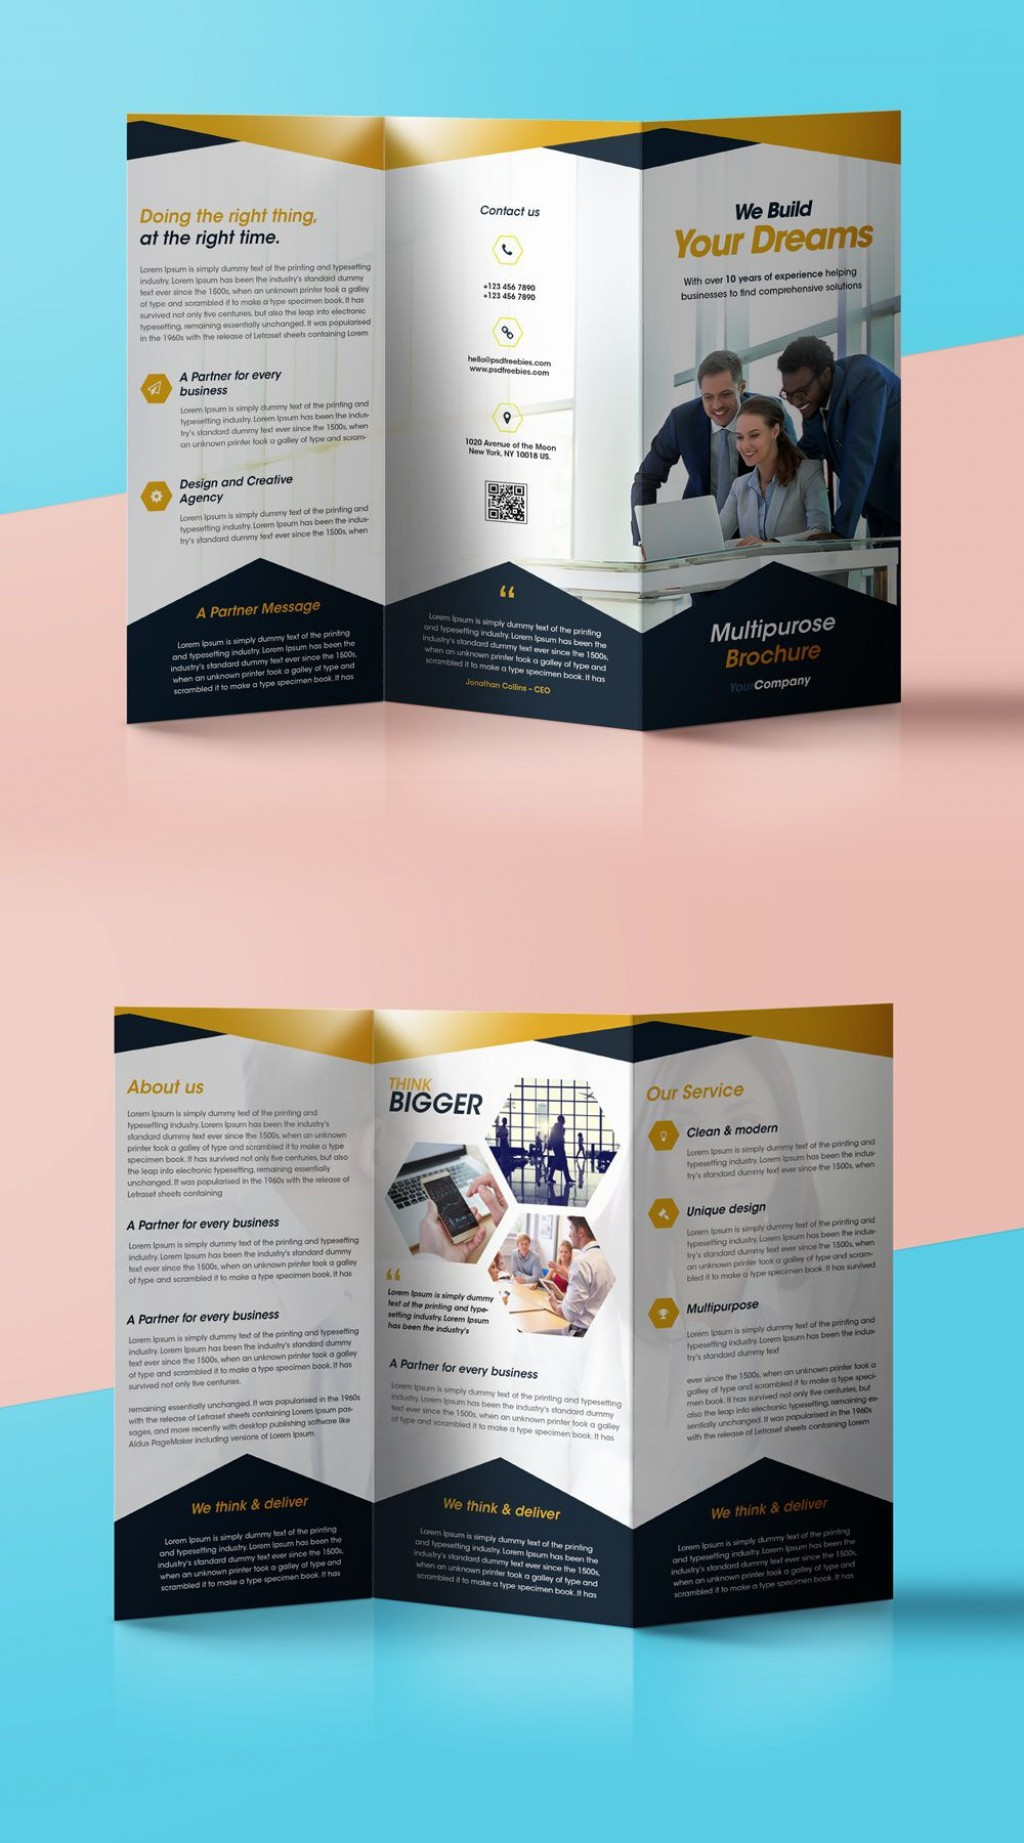 006 Incredible 3 Fold Brochure Template High Def  Templates For FreeLarge